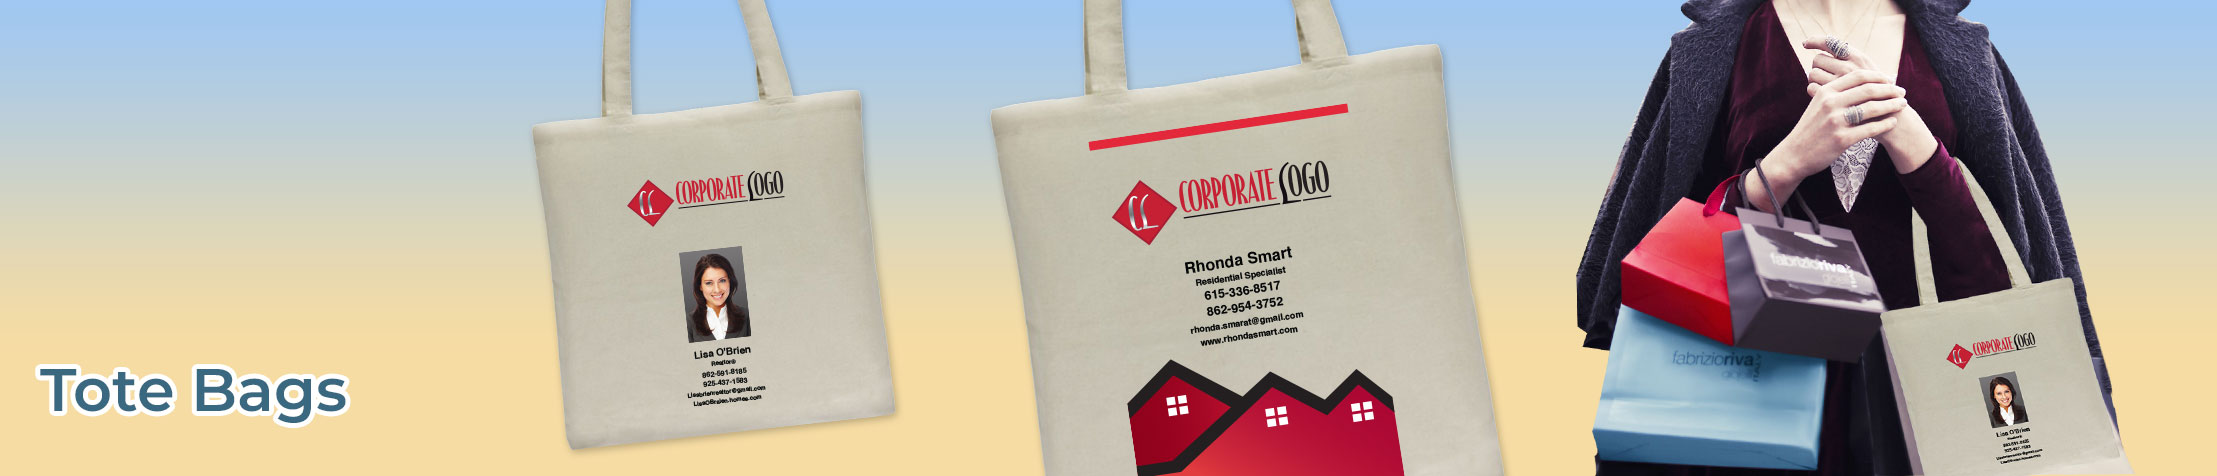 HomeSmart Real Estate Tote Bags - HomeSmart Real Estate  personalized realtor promotional products | BestPrintBuy.com